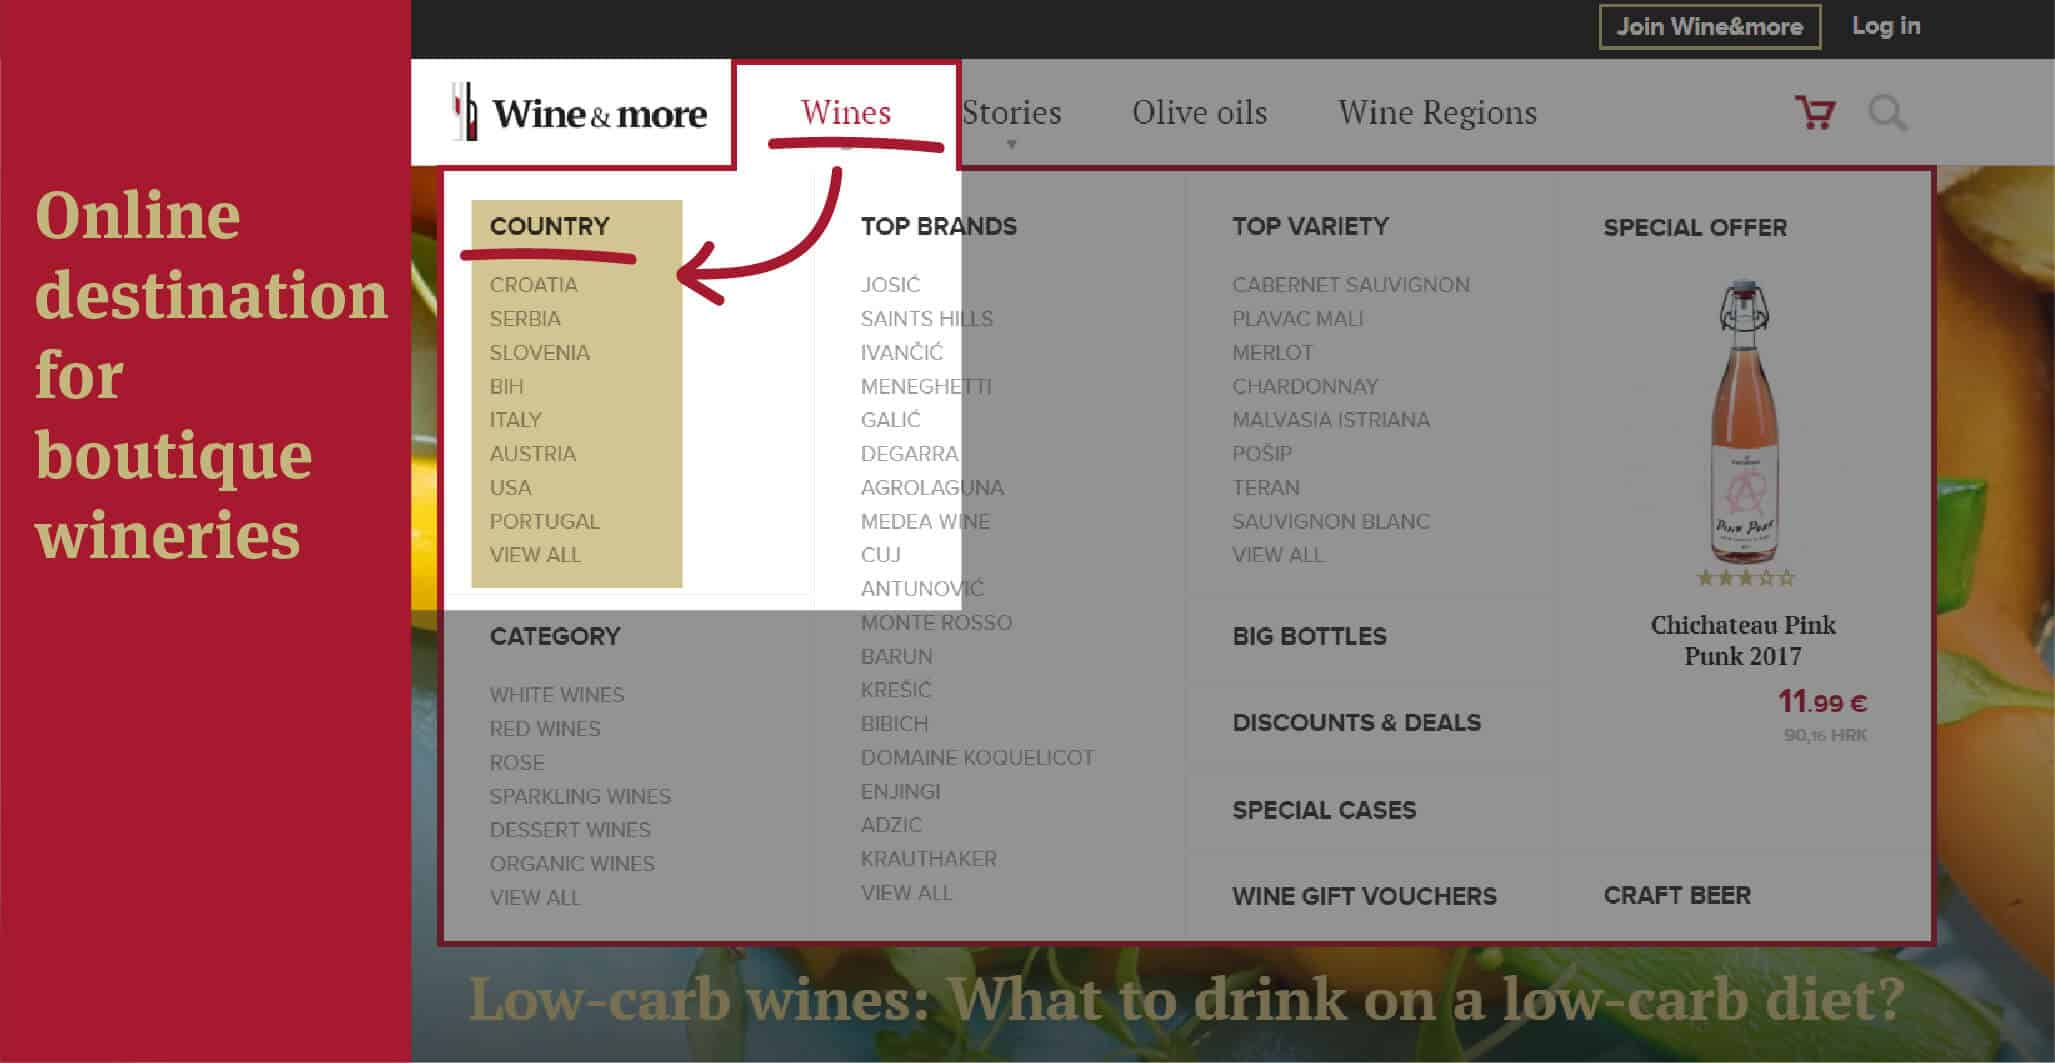 Online destination for boutique wineries